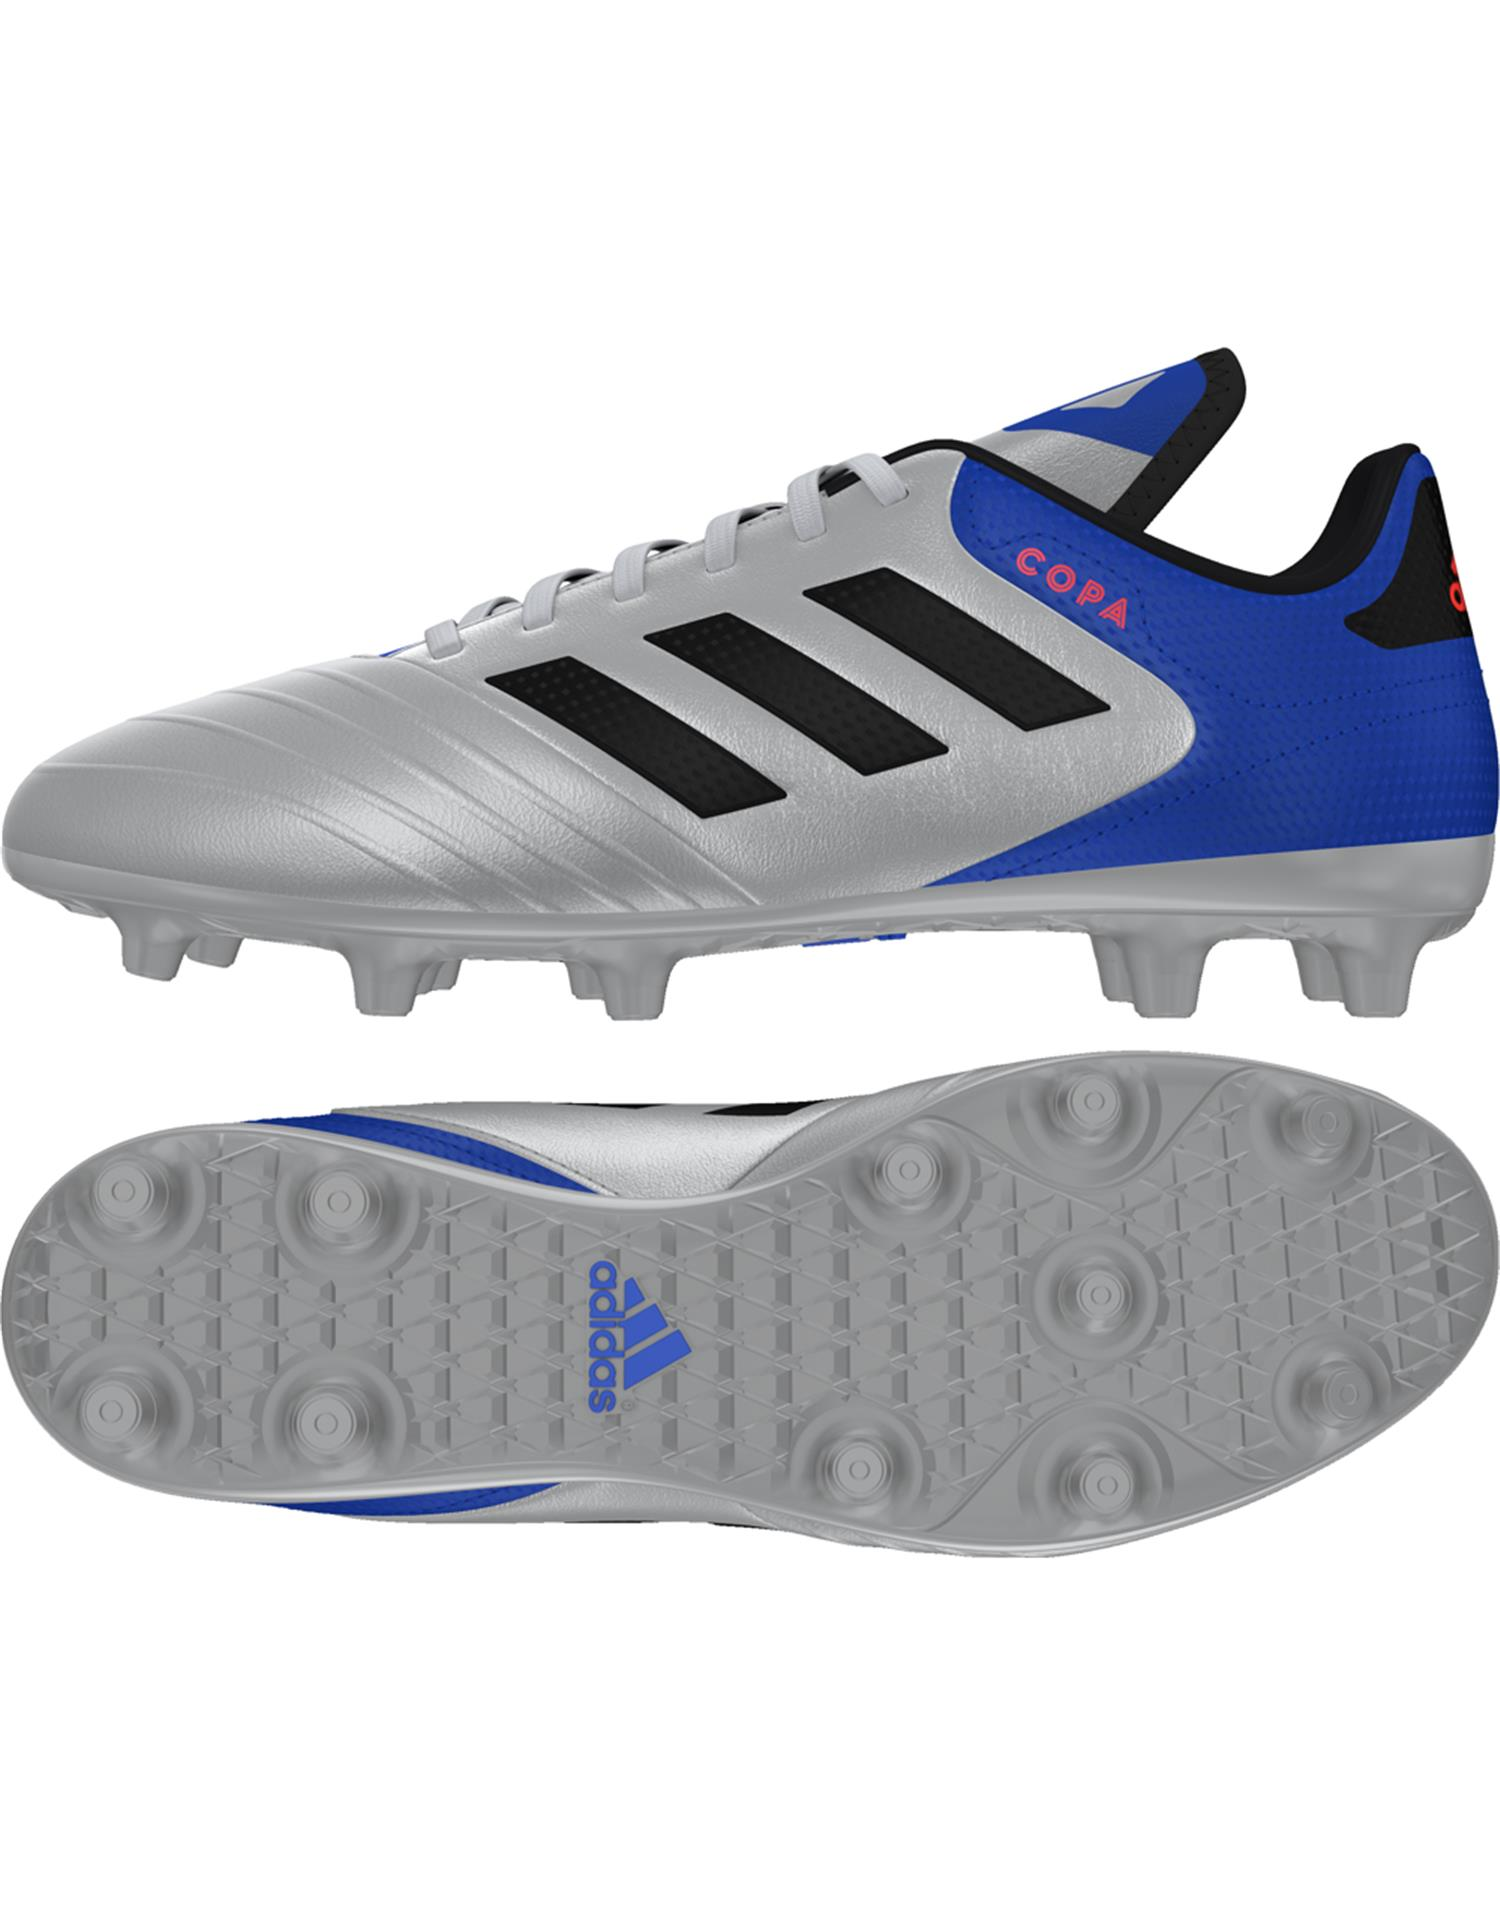 ADIDAS Scarpe da Calcio Copa 18.3 Firm Ground (41-1/3 - ARGENTO - ROYAL - NERO)